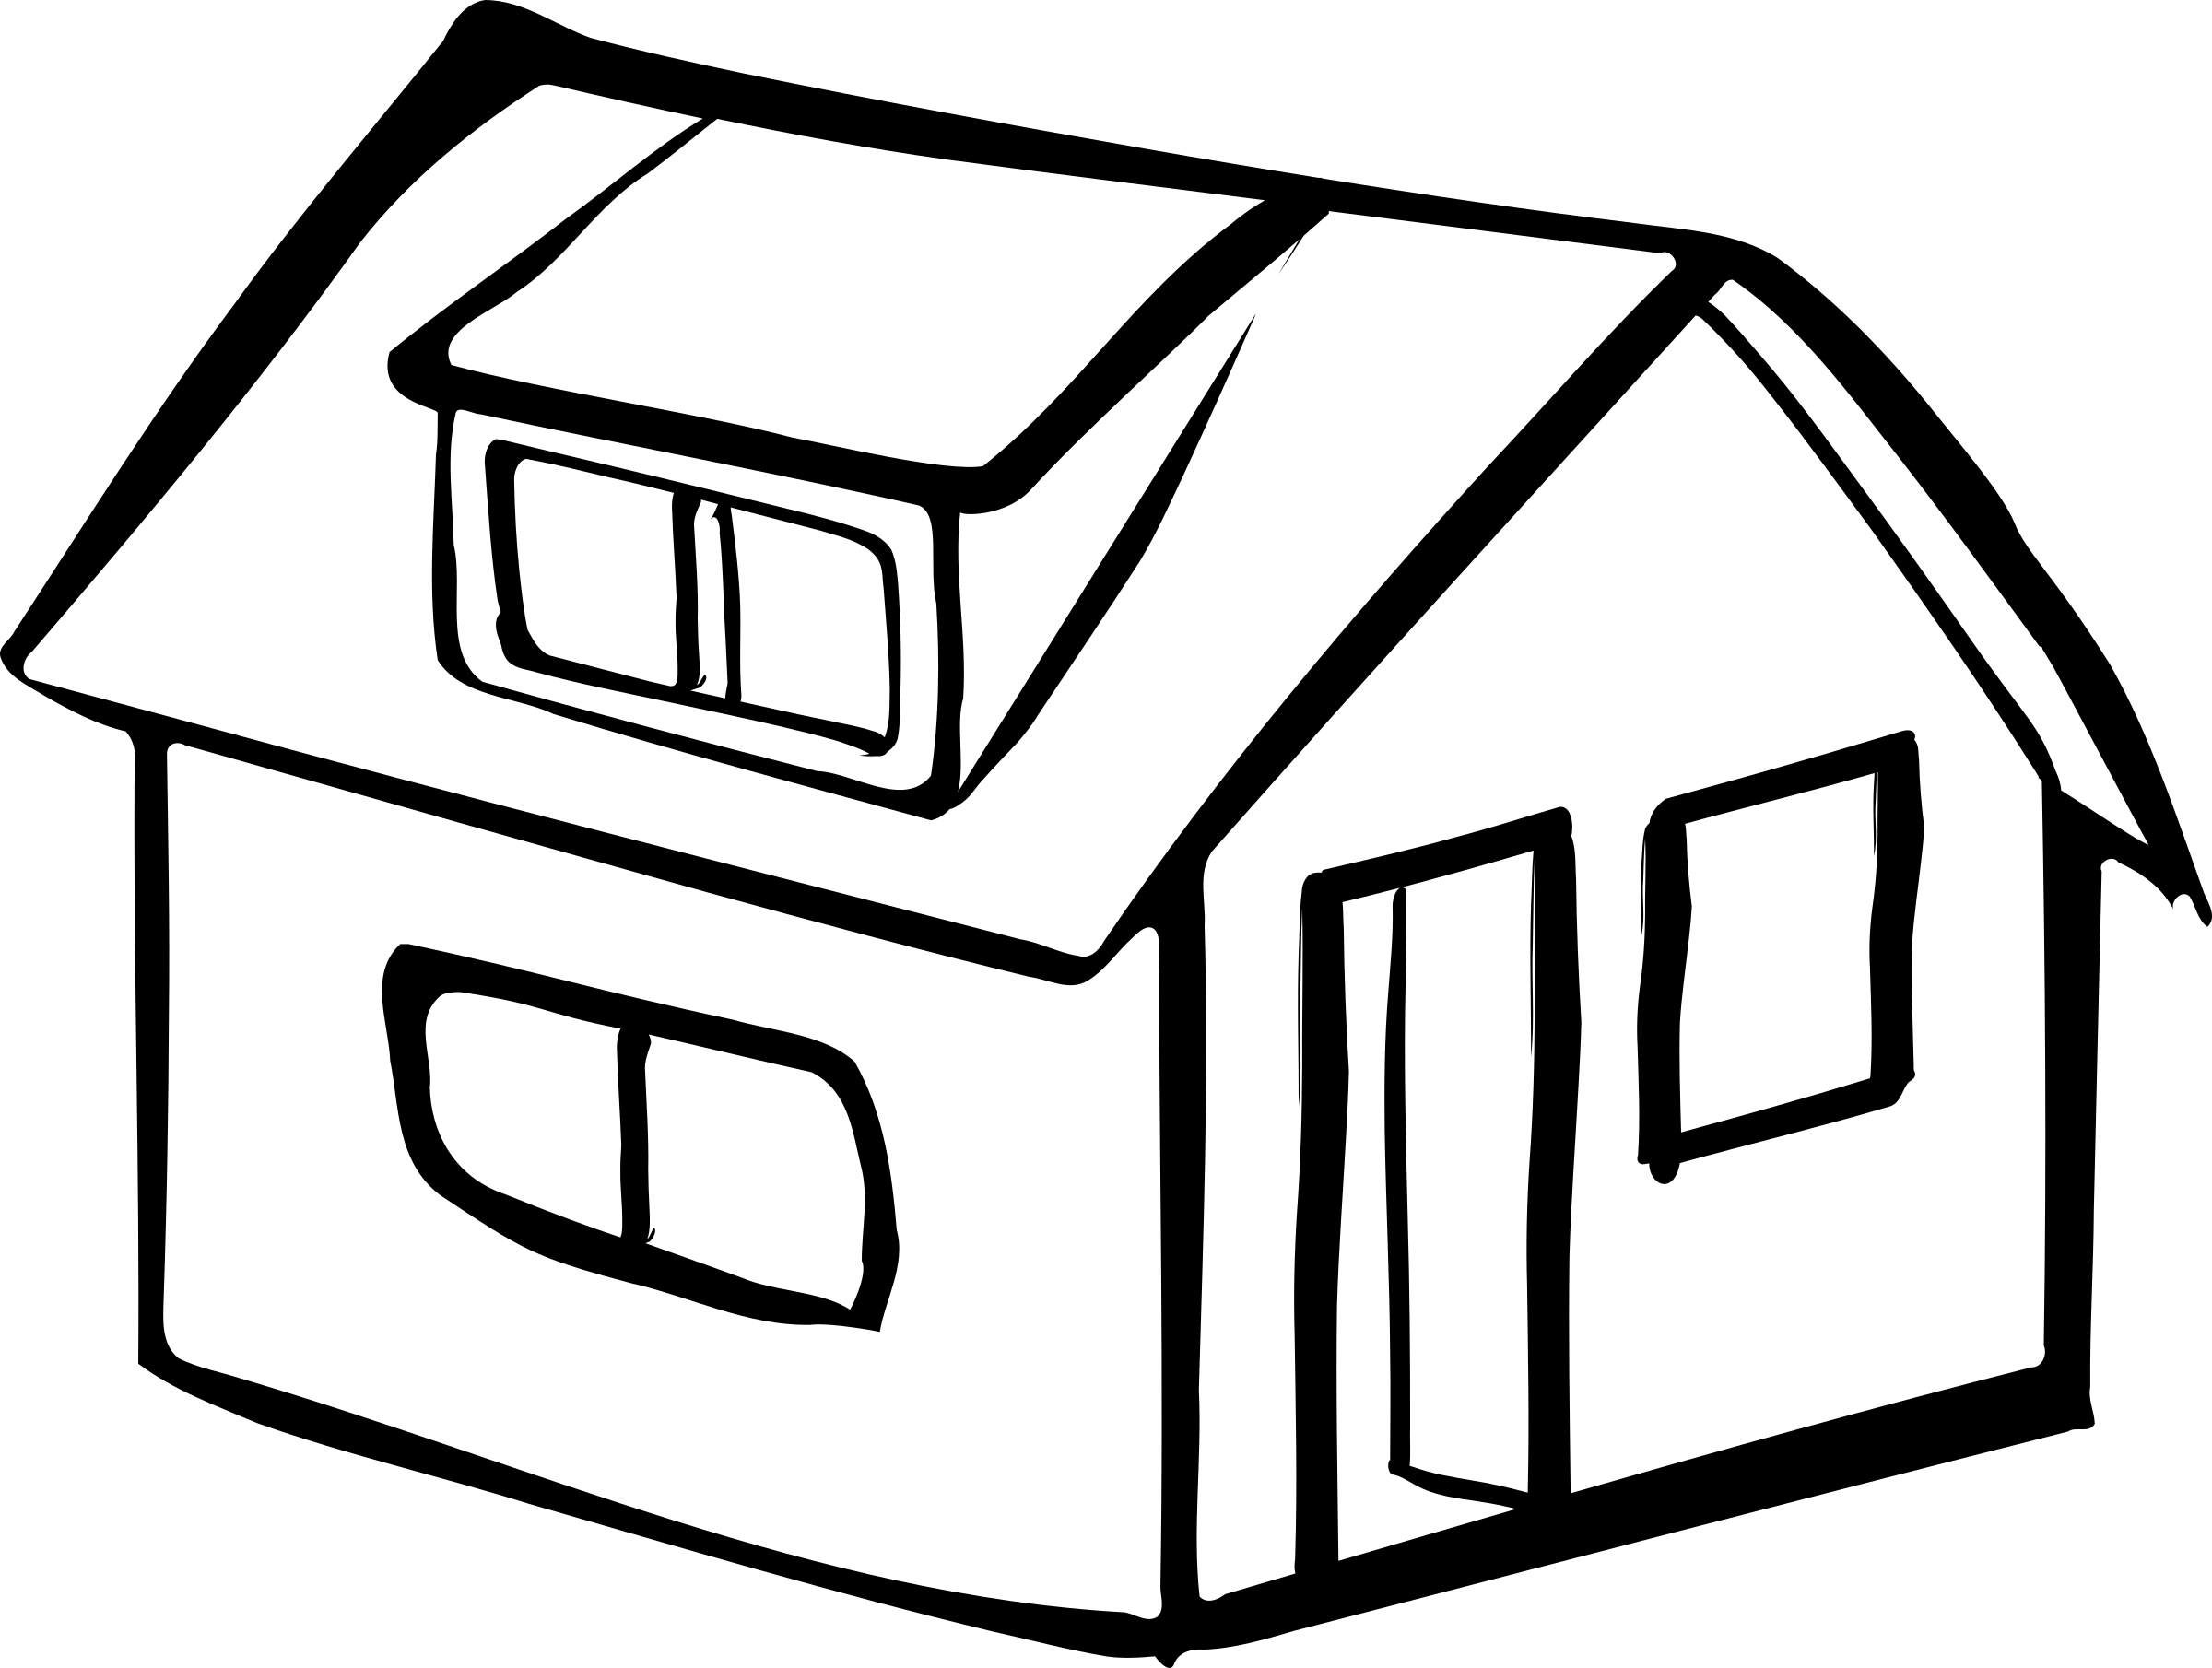 House Outline